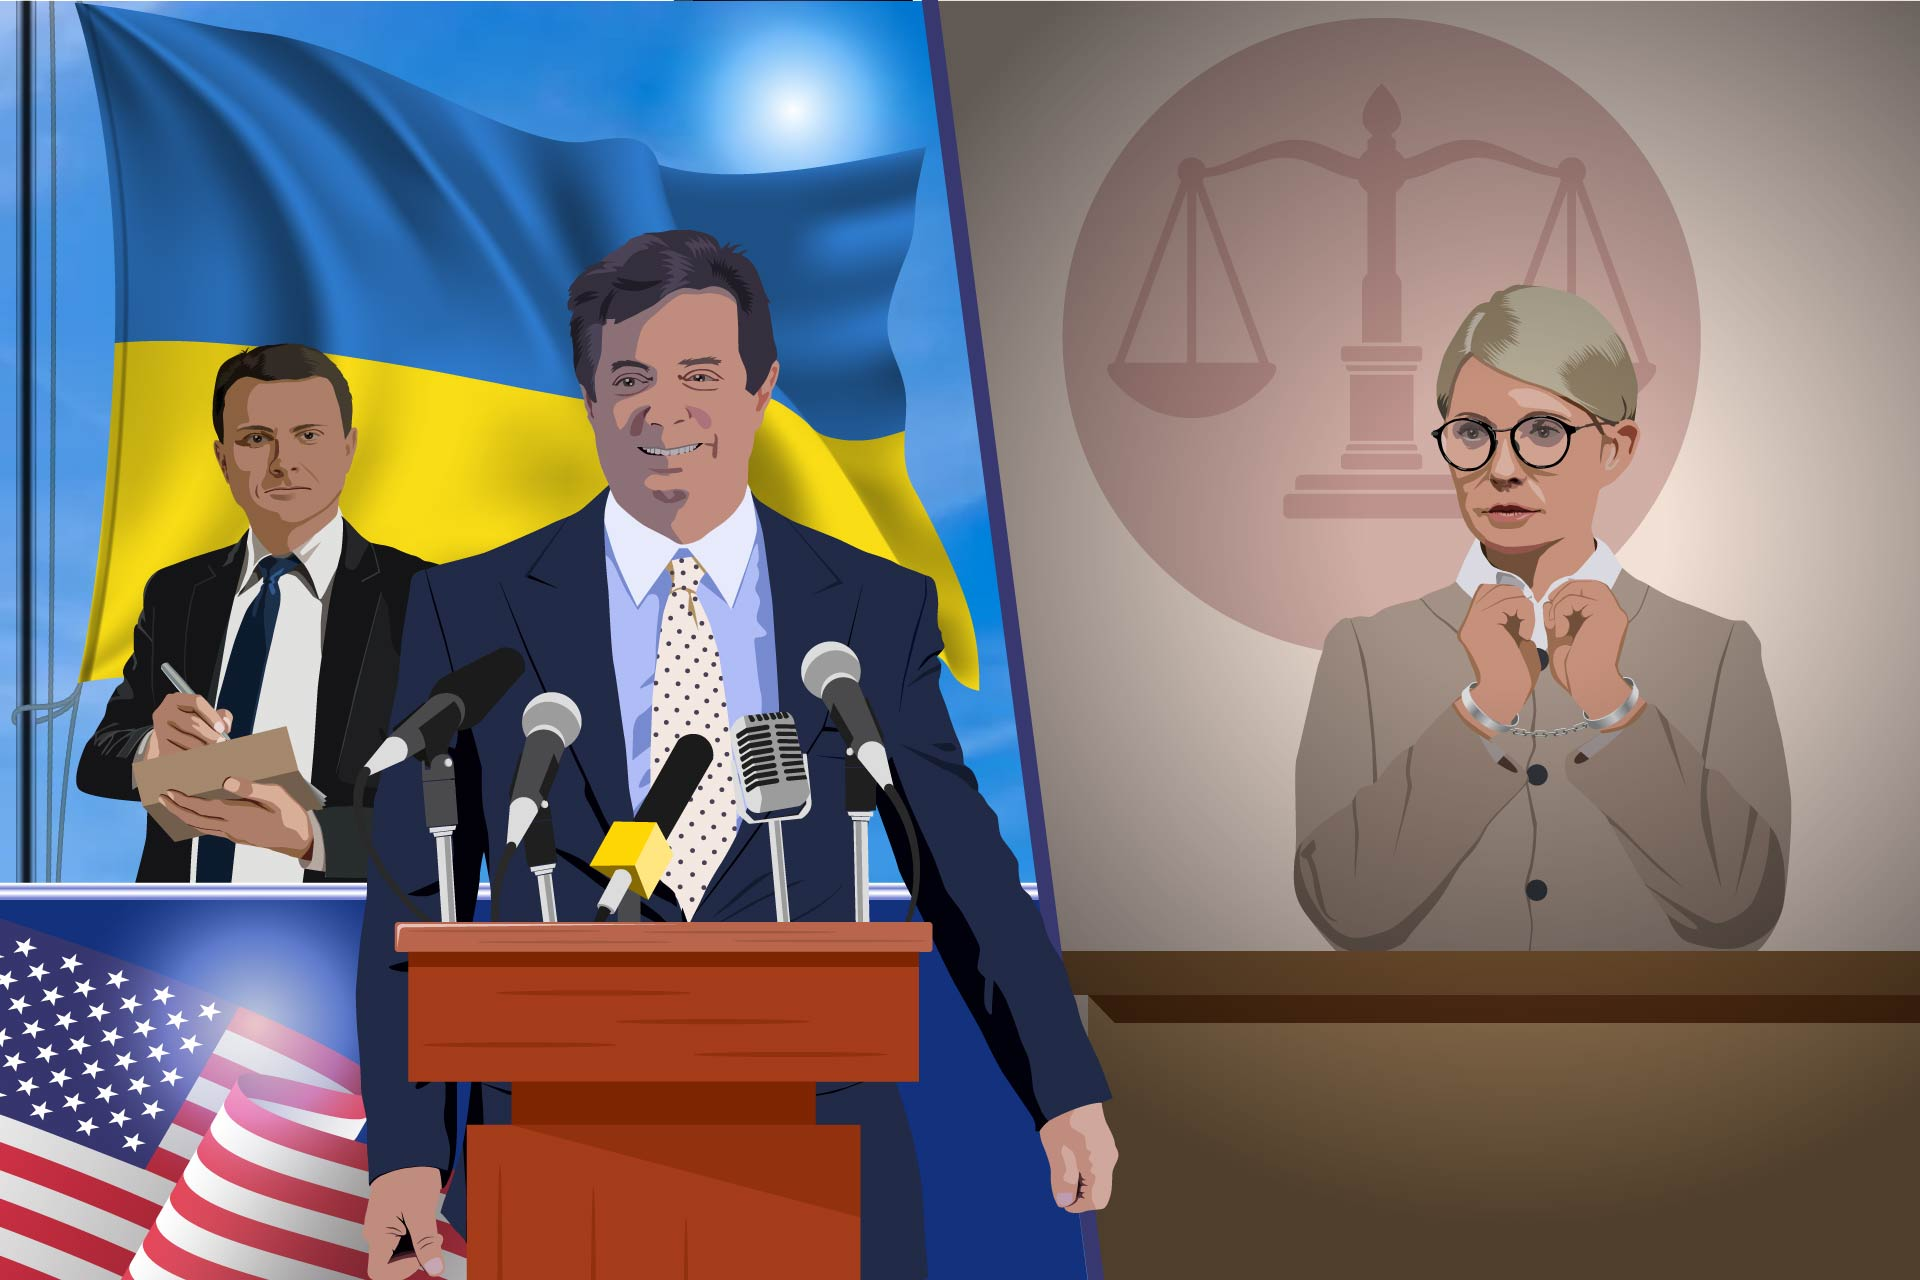 Exposed: The Ukrainian Politician Who Funded Paul Manafort's Secret EU Lobbying Campaign